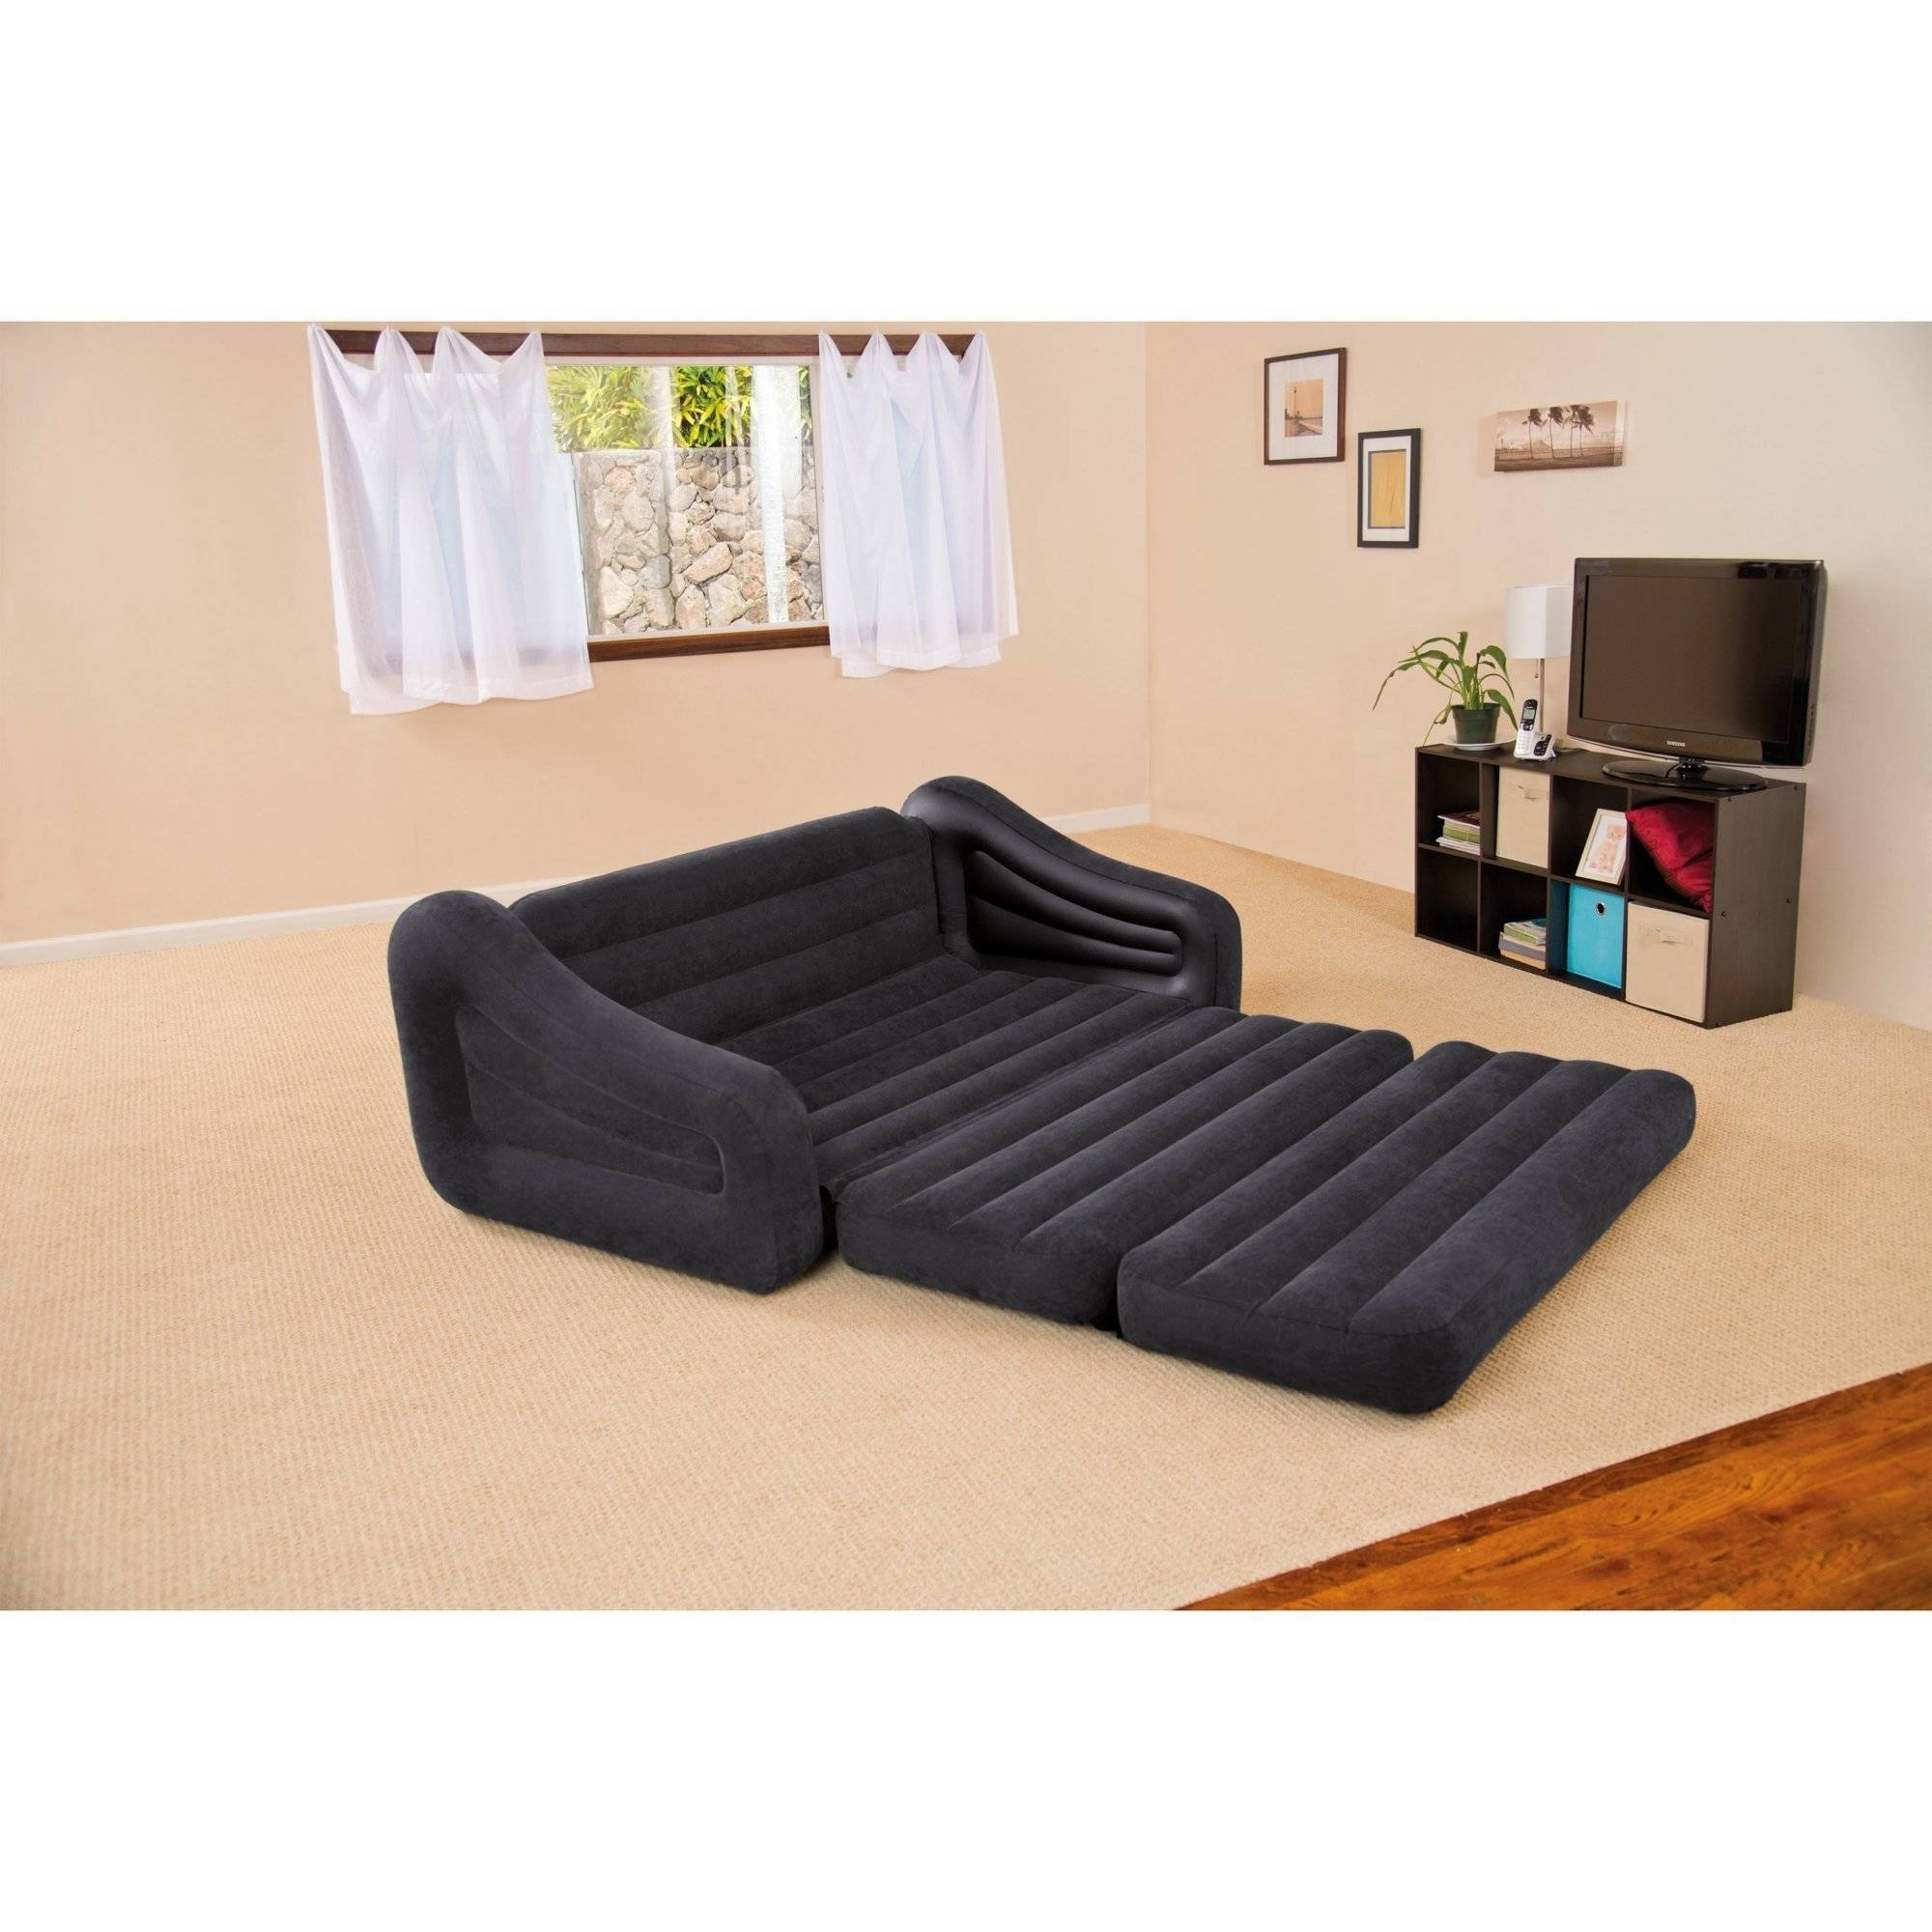 Intex Queen Inflatable Pull Out Sofa Bed - Walmart within Pull Out Sofa Chairs (Image 14 of 30)